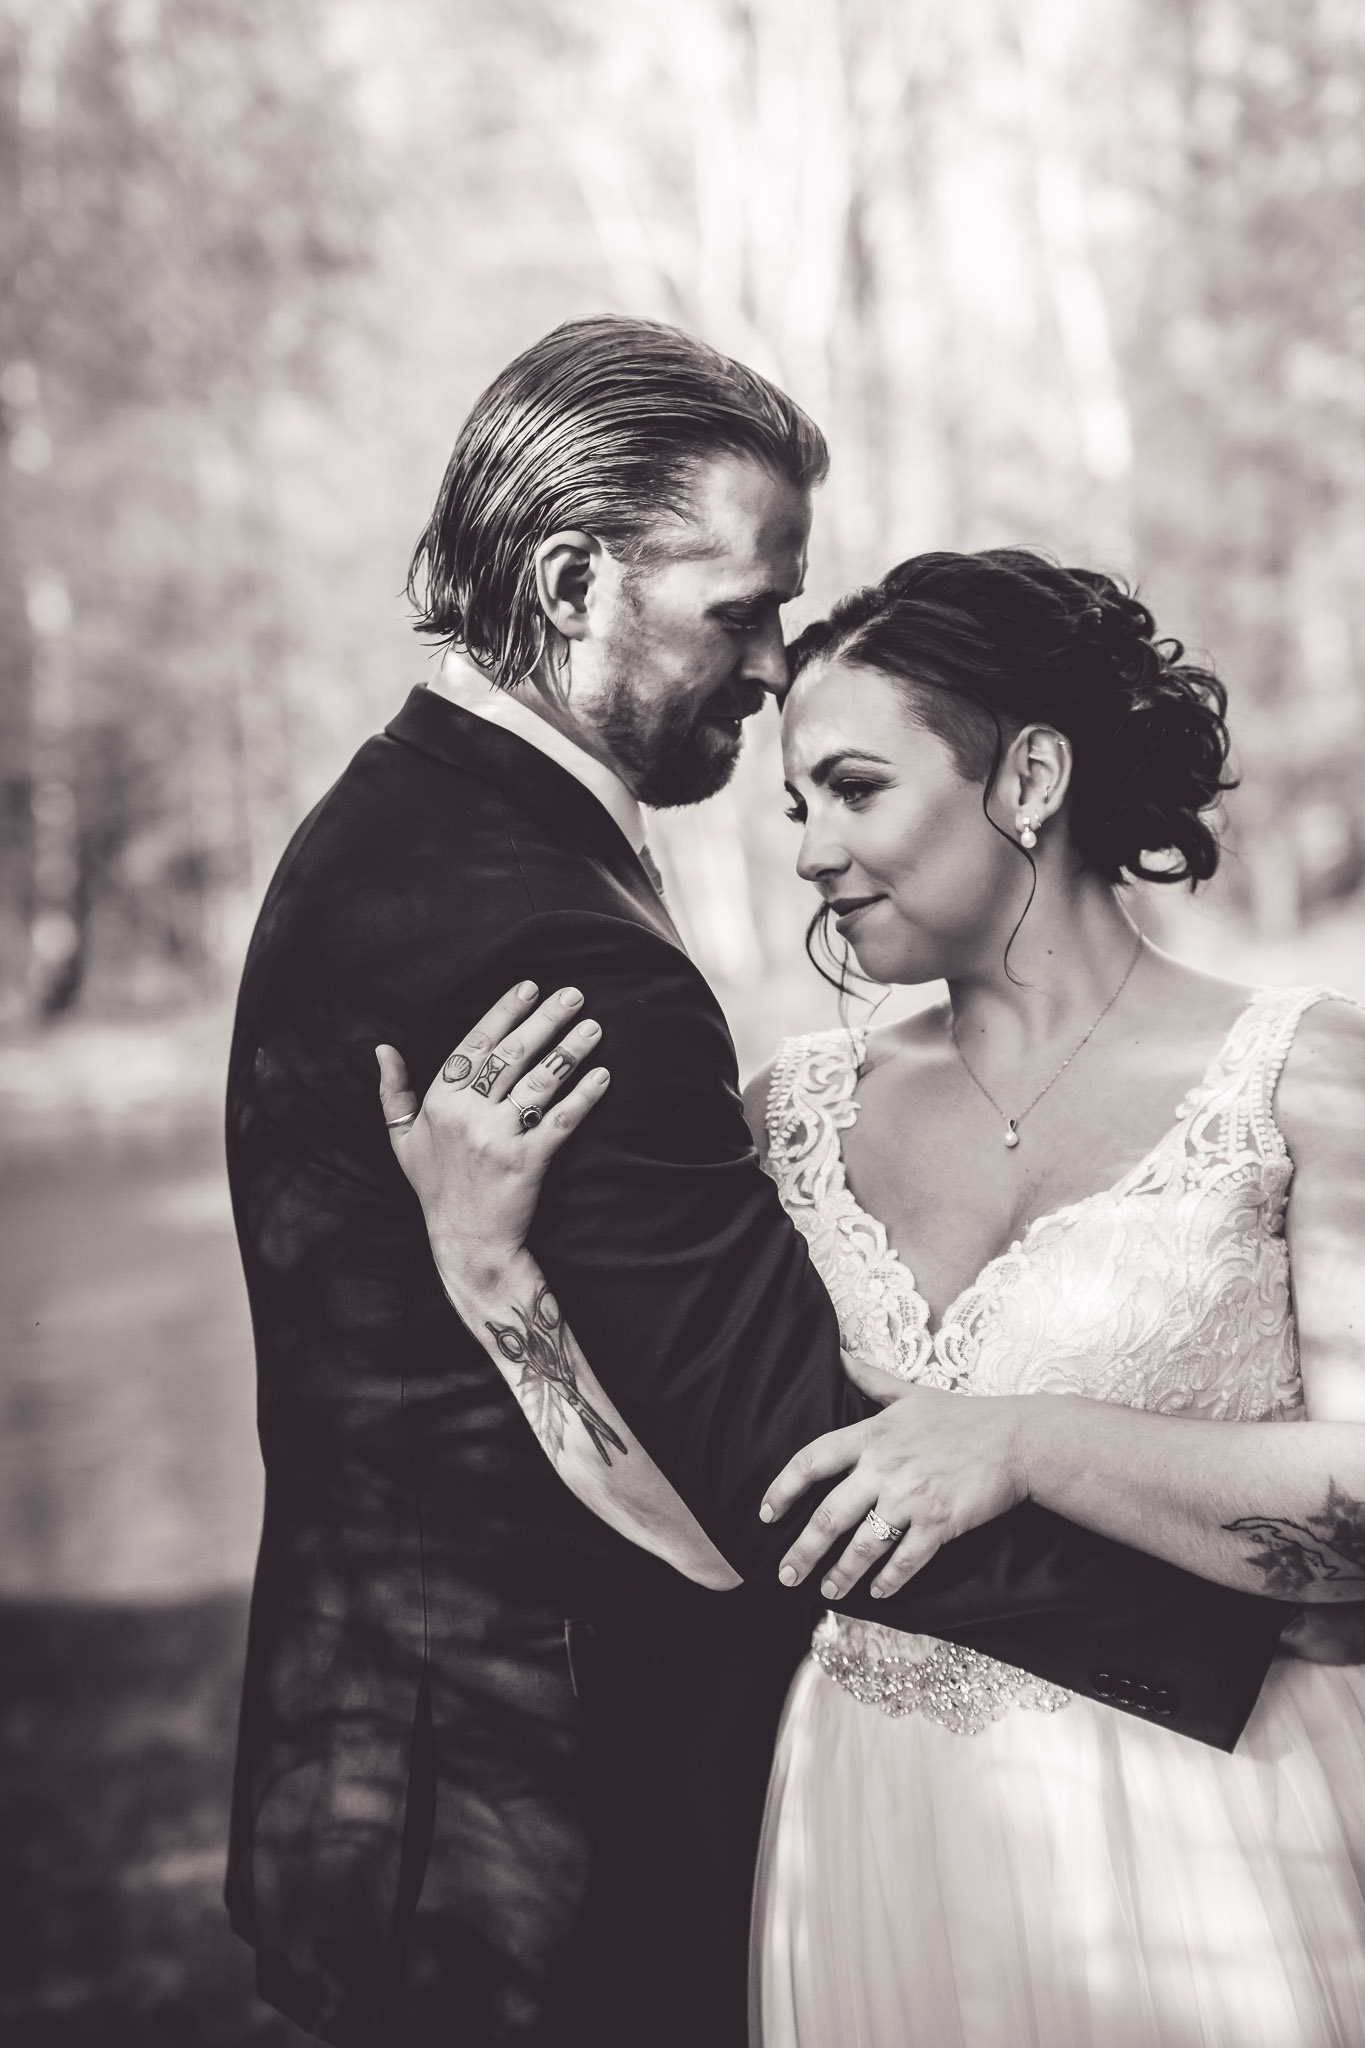 Amy D Photography- Bride and Groom-Barrie Wedding Photography Muskoka Wedding Photography Bride and Groom Poses Bride and Groom Train Tracks Snow Valley Wedding-122.jpg